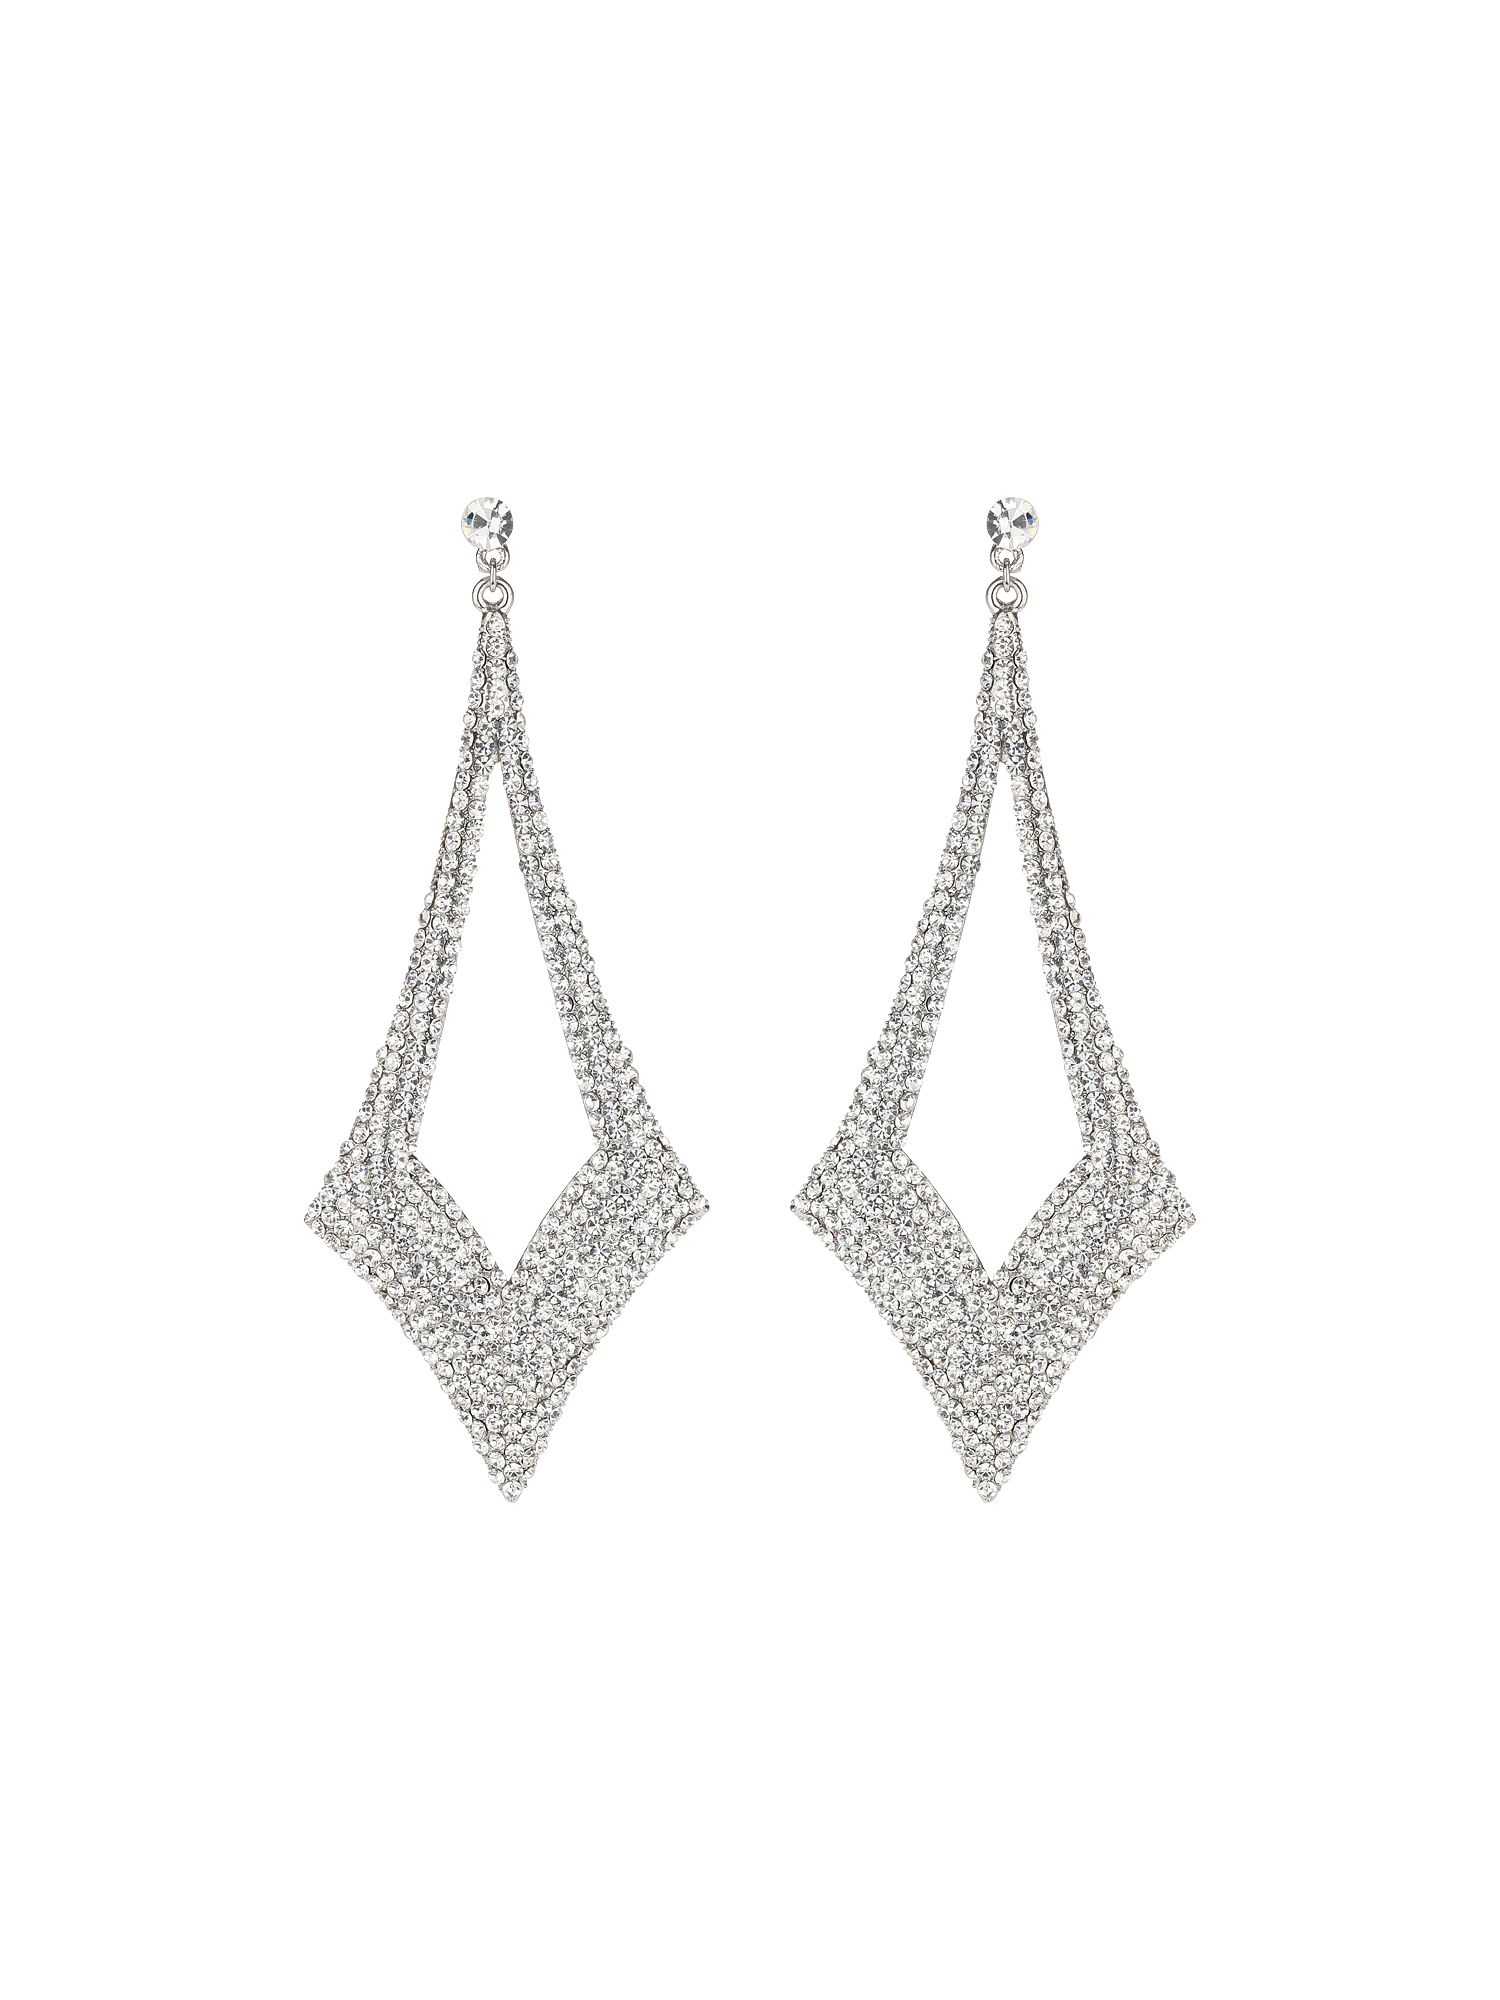 Large diamond drop earrings